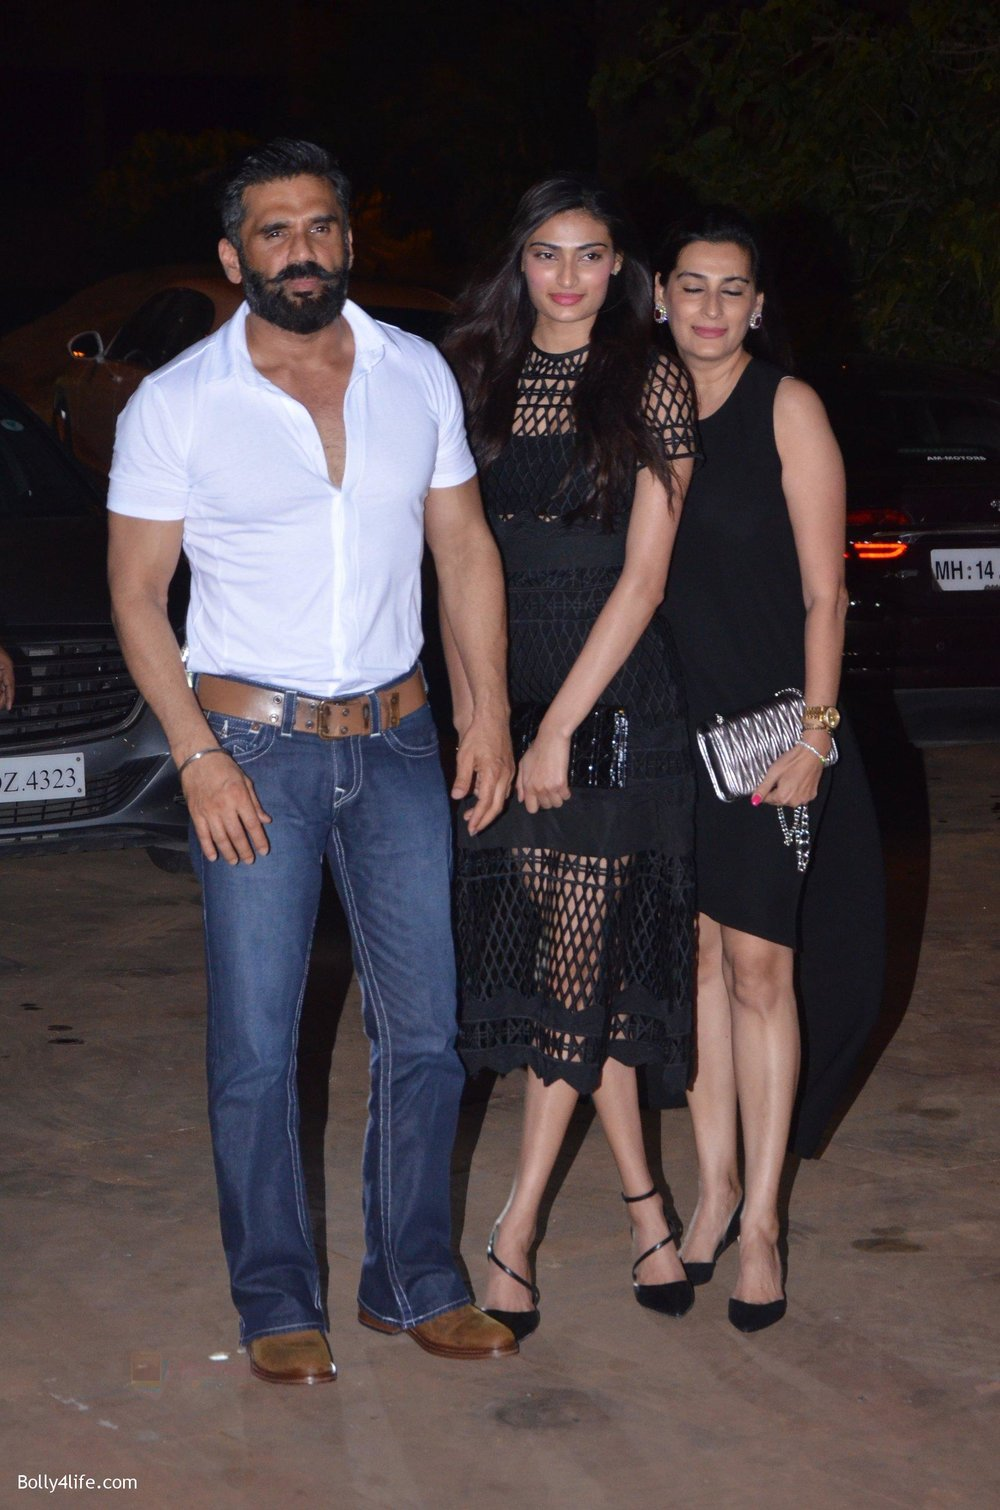 Sunil-Shetty-Mana-Shetty-Athiya-Shetty-at-Reema-jain-bday-party-in-Amadeus-NCPA-on-28th-Sept-2016-897.jpg